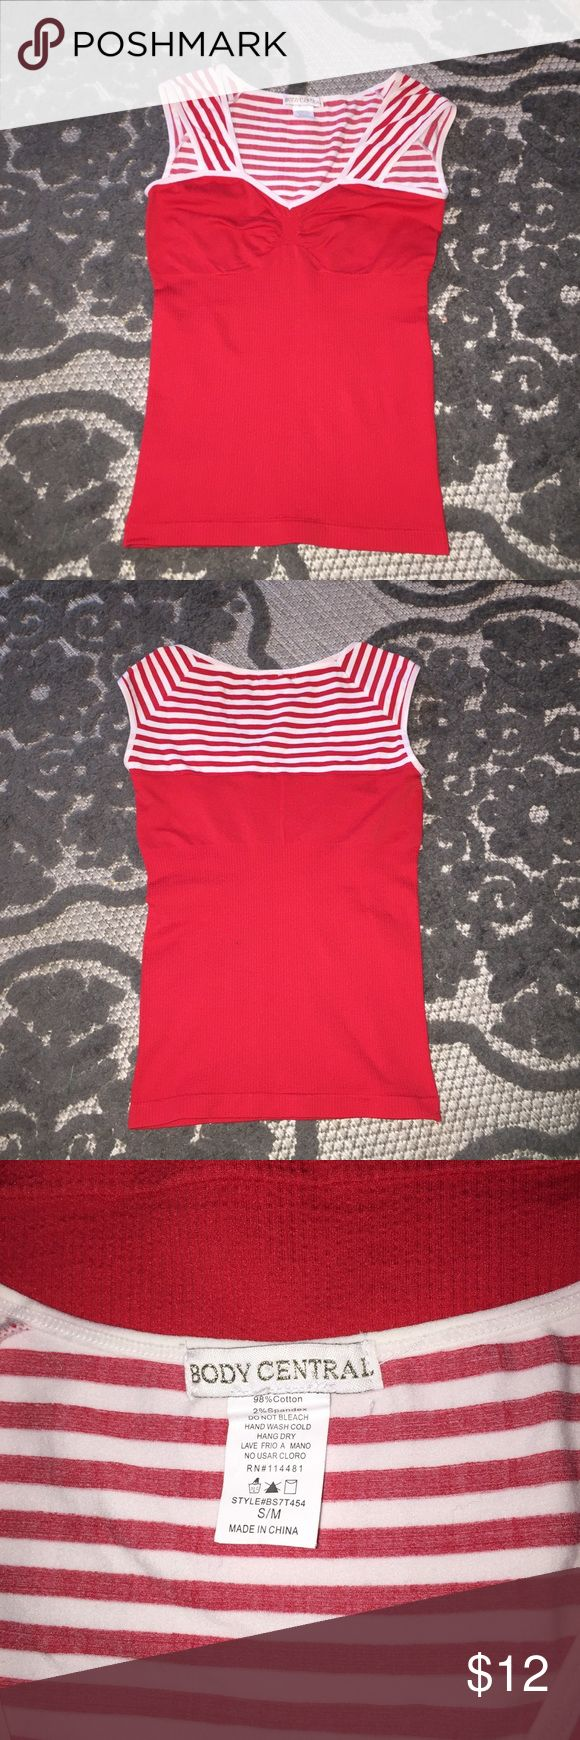 Body Central Top Red stretchy top with white stripes. Body Central Tops Tank Tops